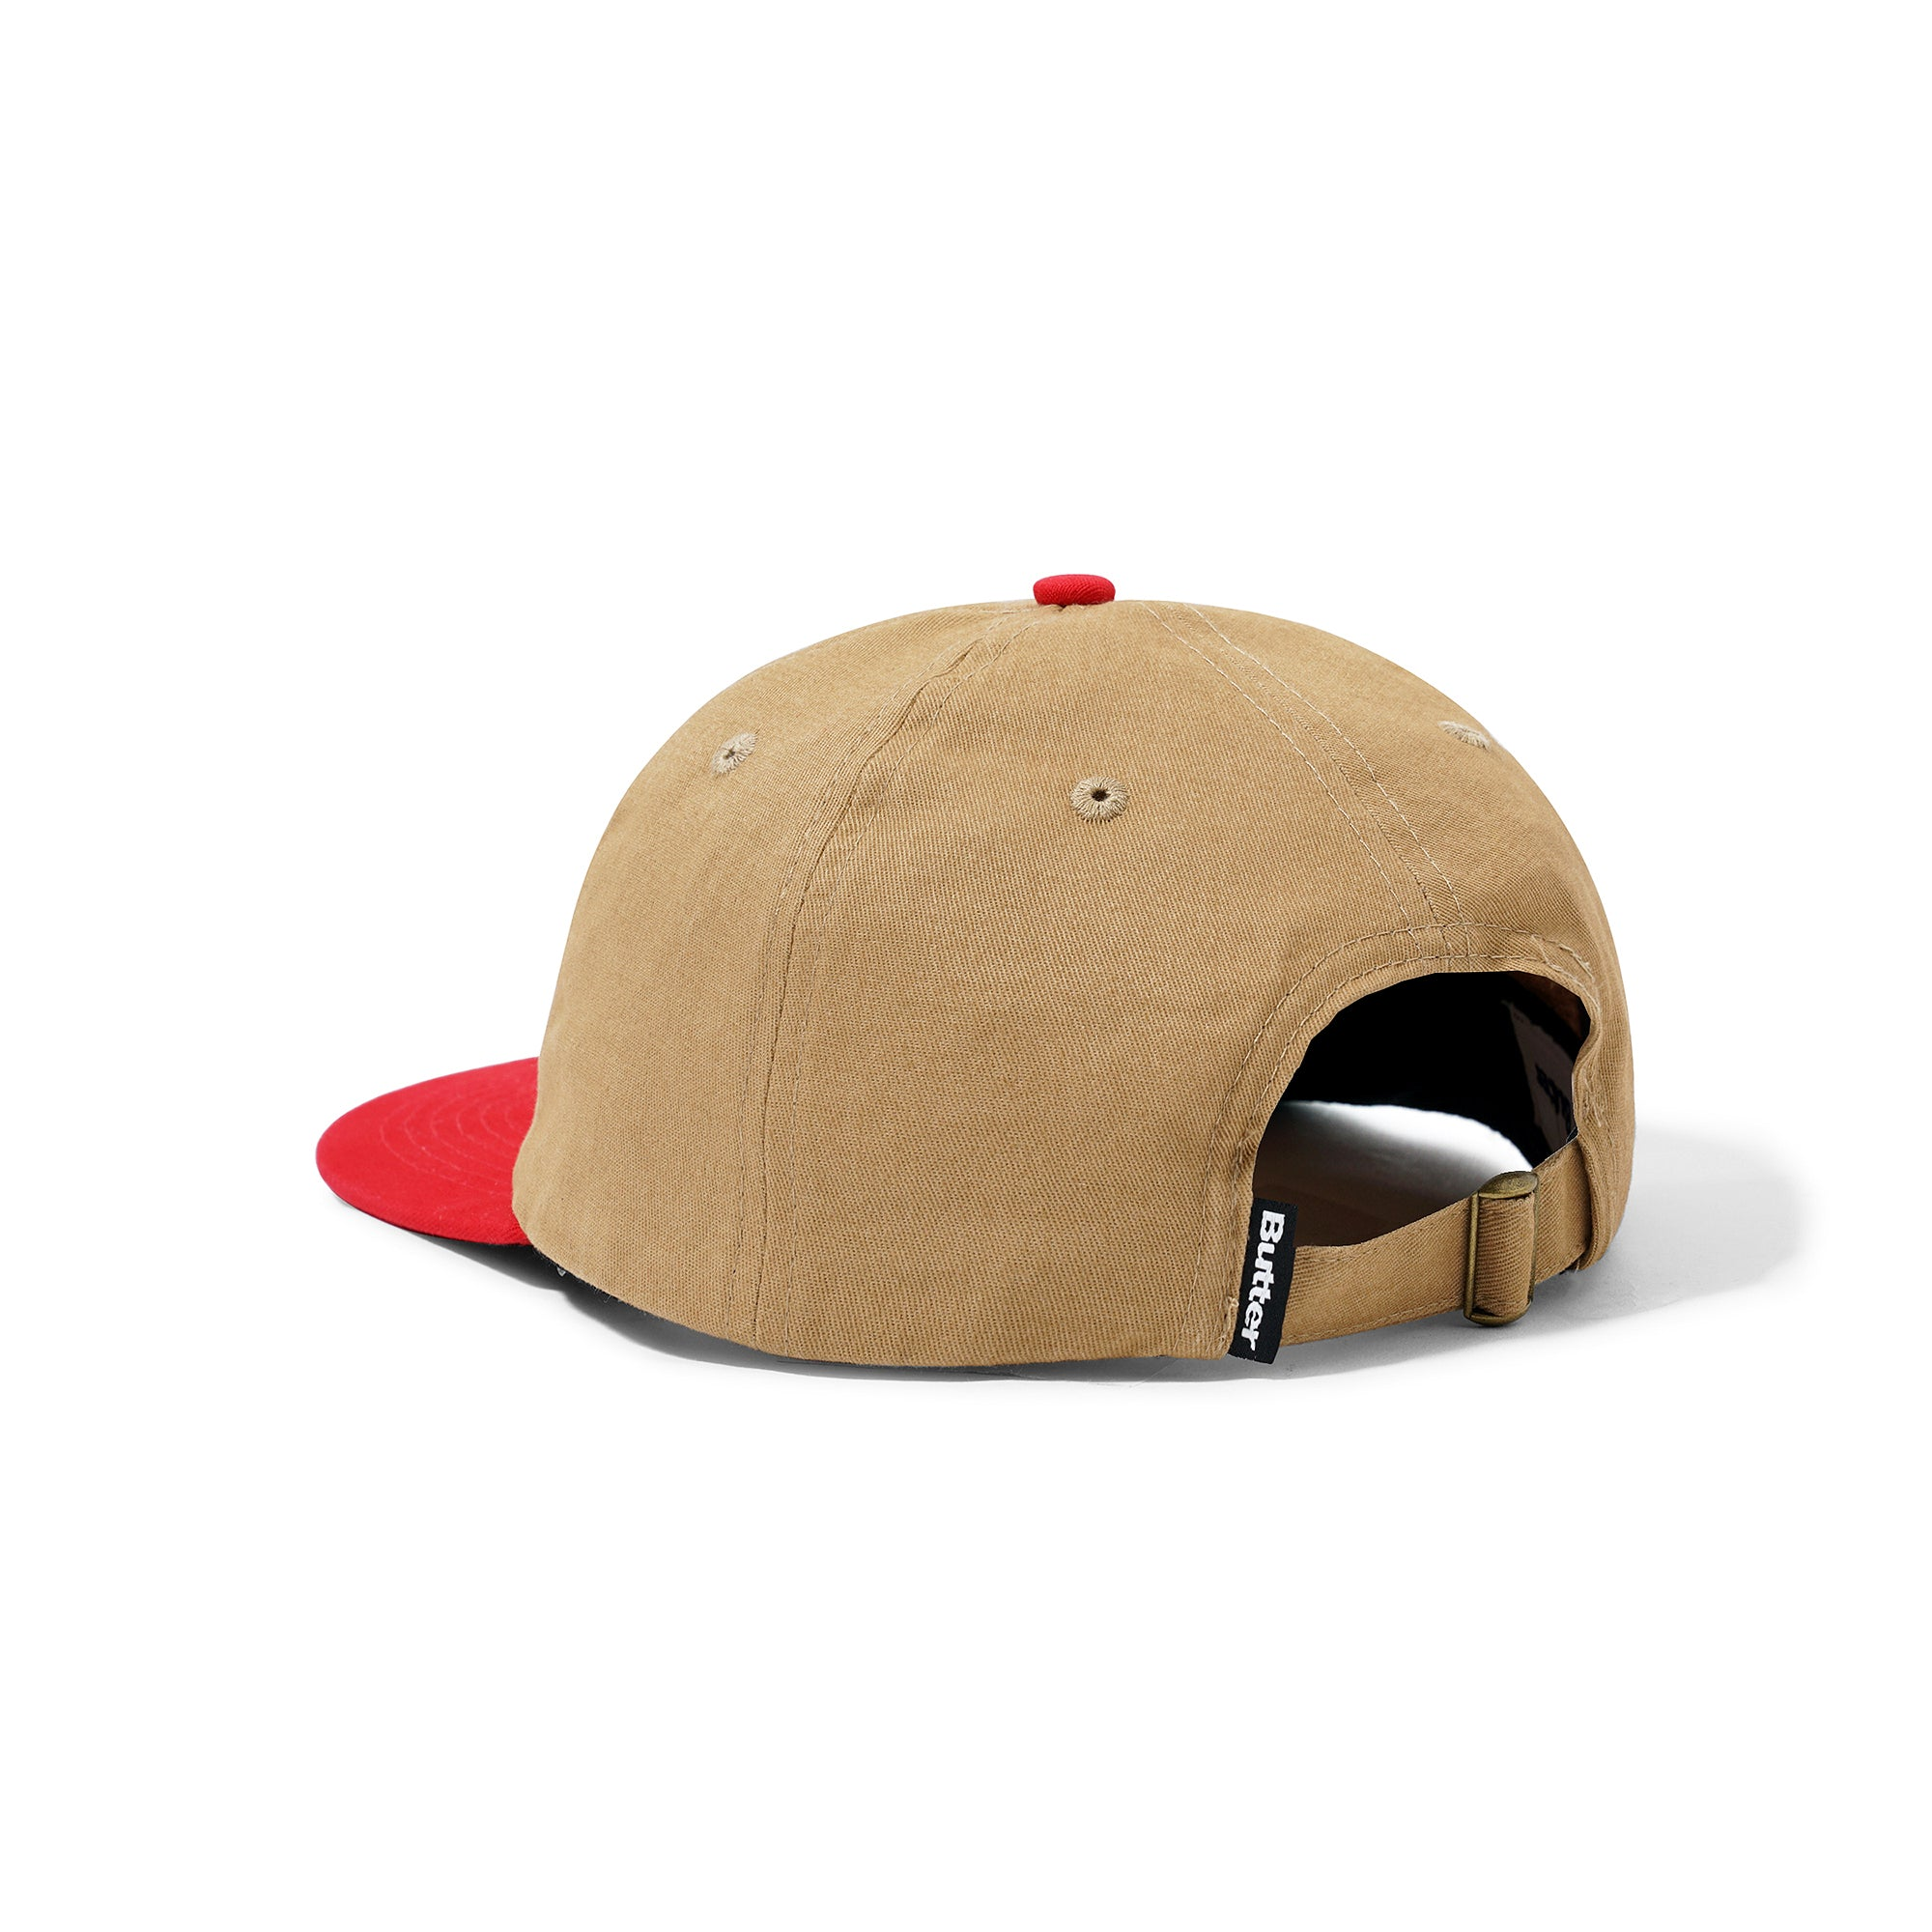 Butter Goods Sax 6 Panel Cap Product Photo #2